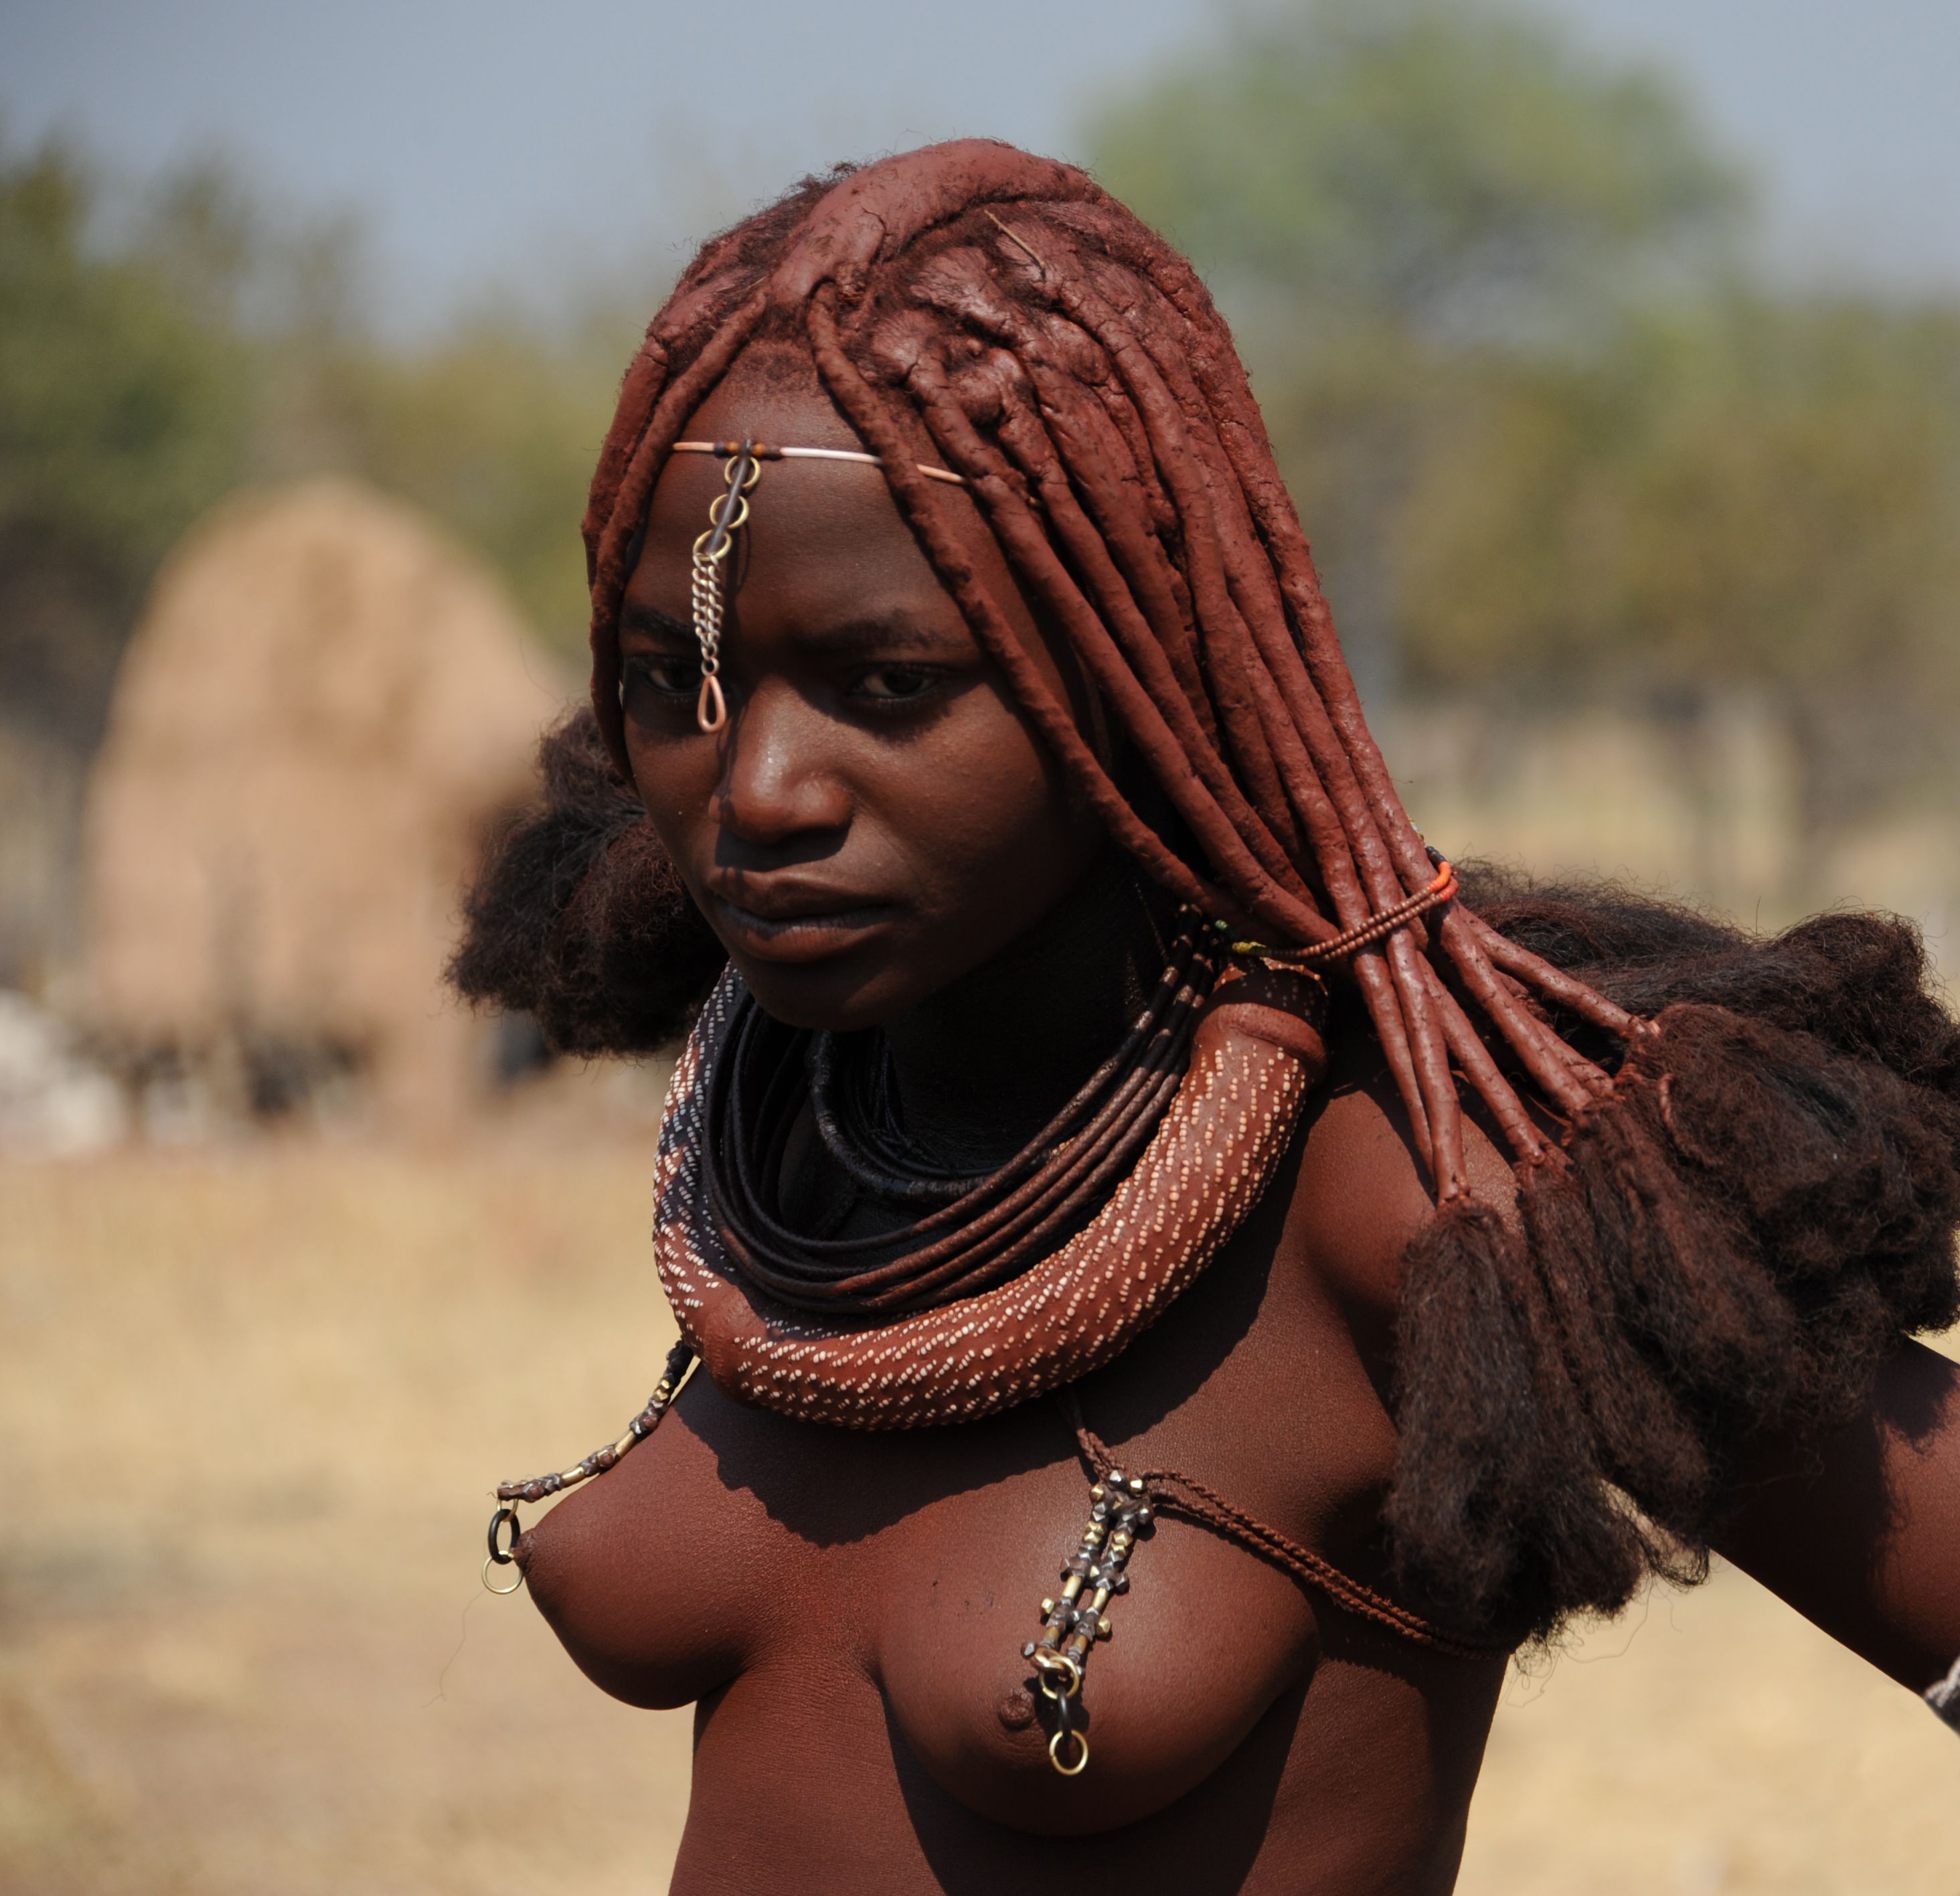 tribe girl young african Himba